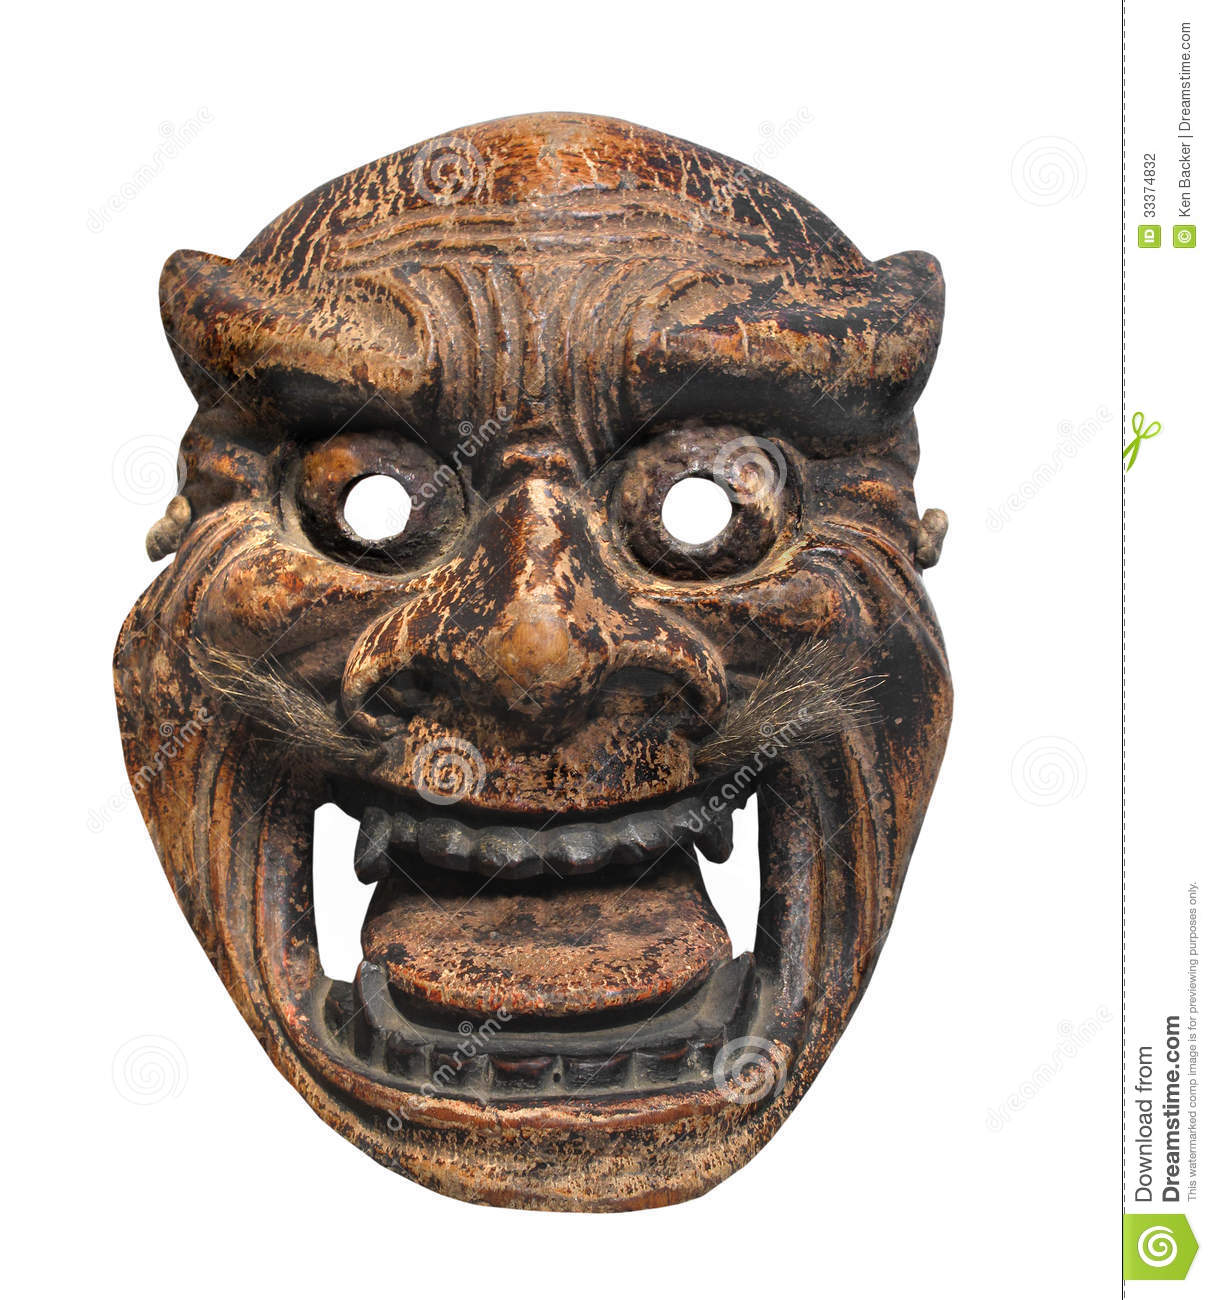 ancient japanese mask isolated stock photo image 33374832. Black Bedroom Furniture Sets. Home Design Ideas